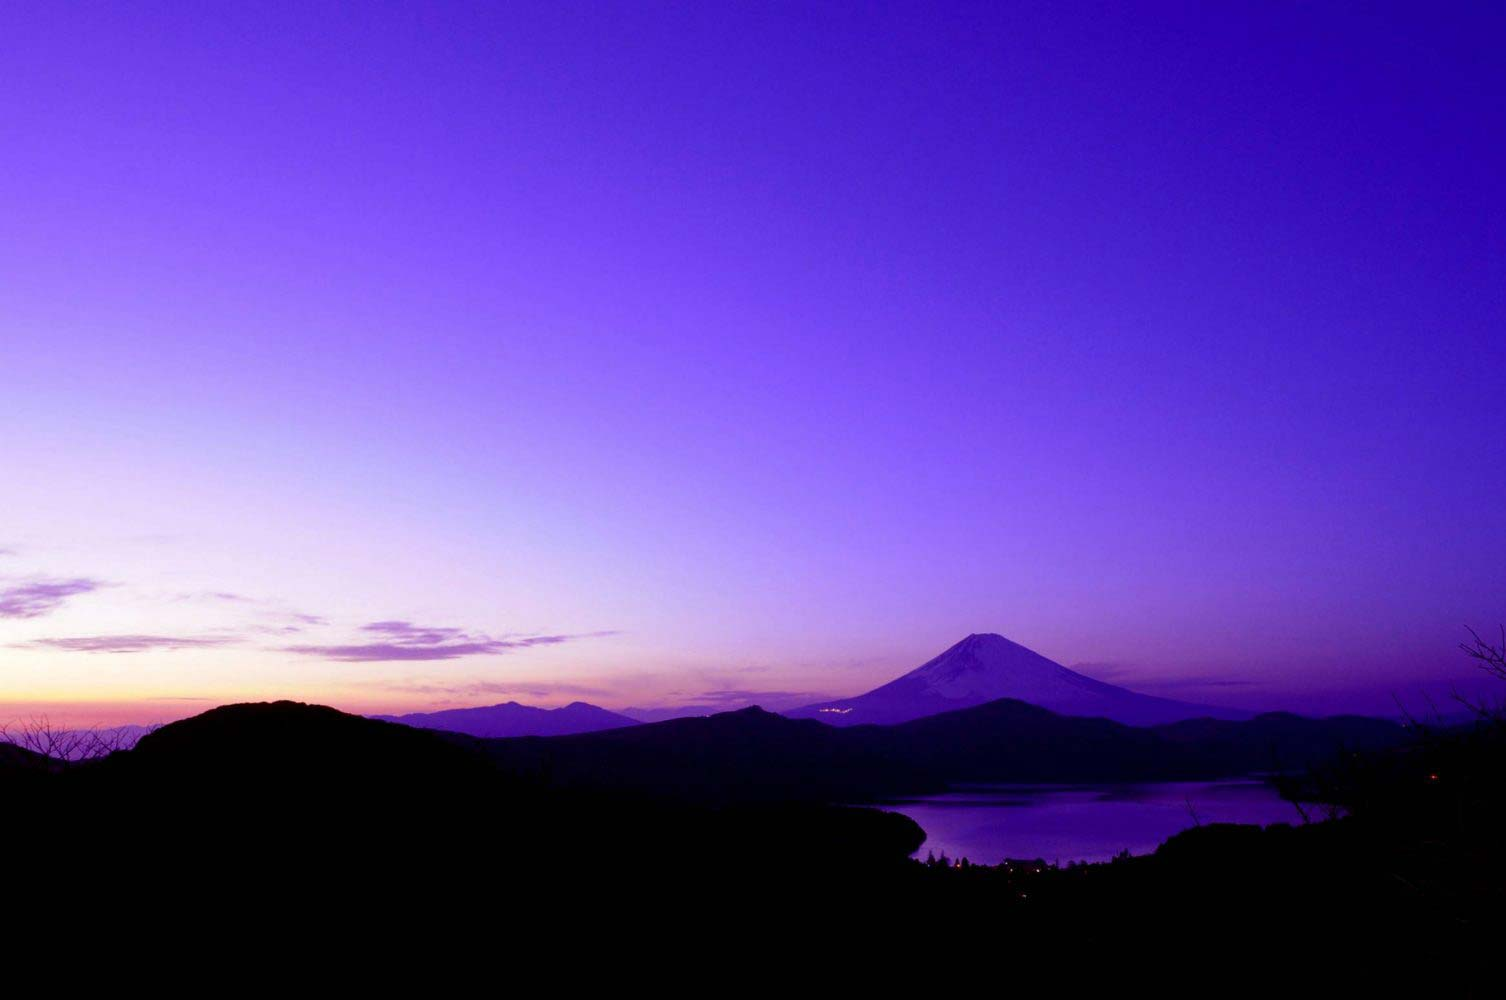 hakone_mt_fuji_winter